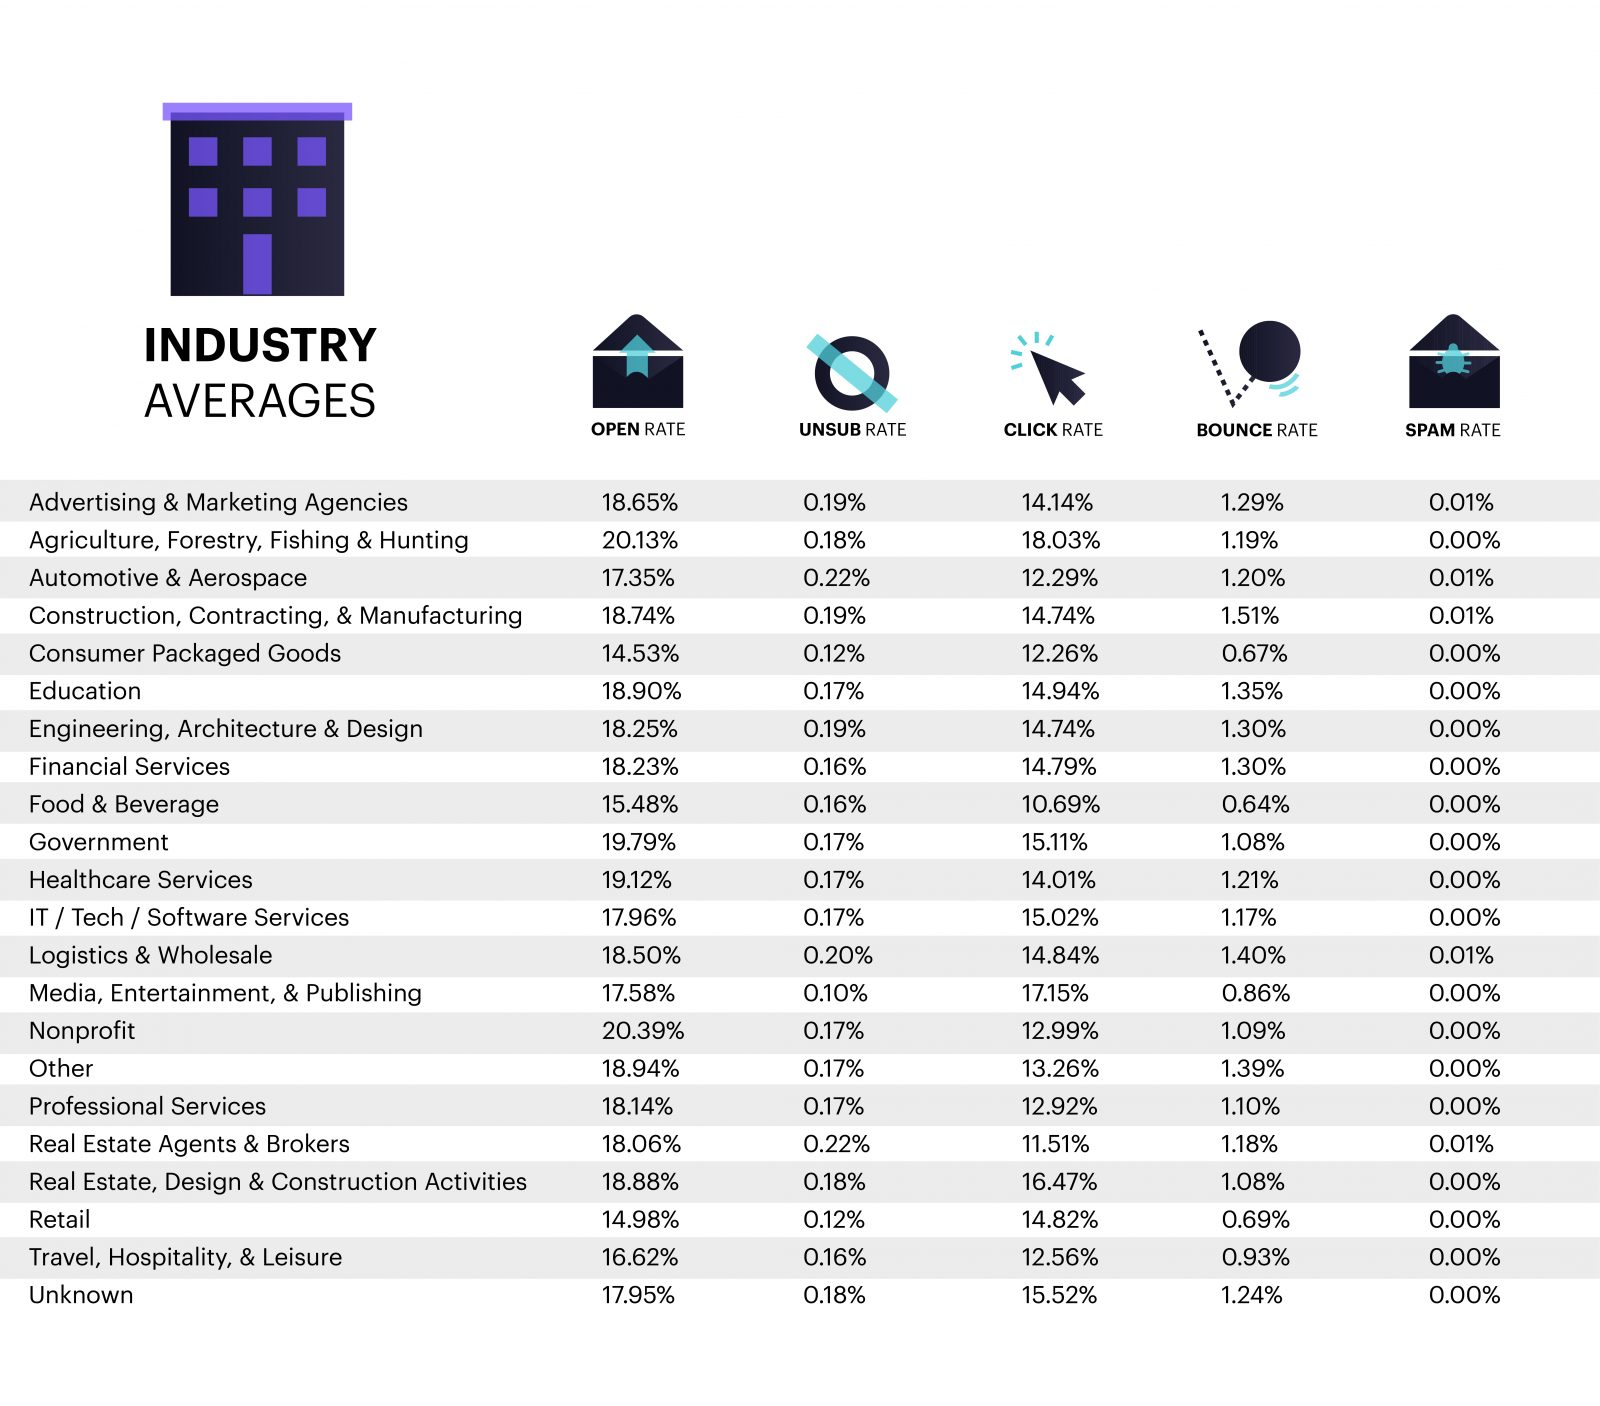 You should know the industry averages and email benchmarks for proper lead scoring